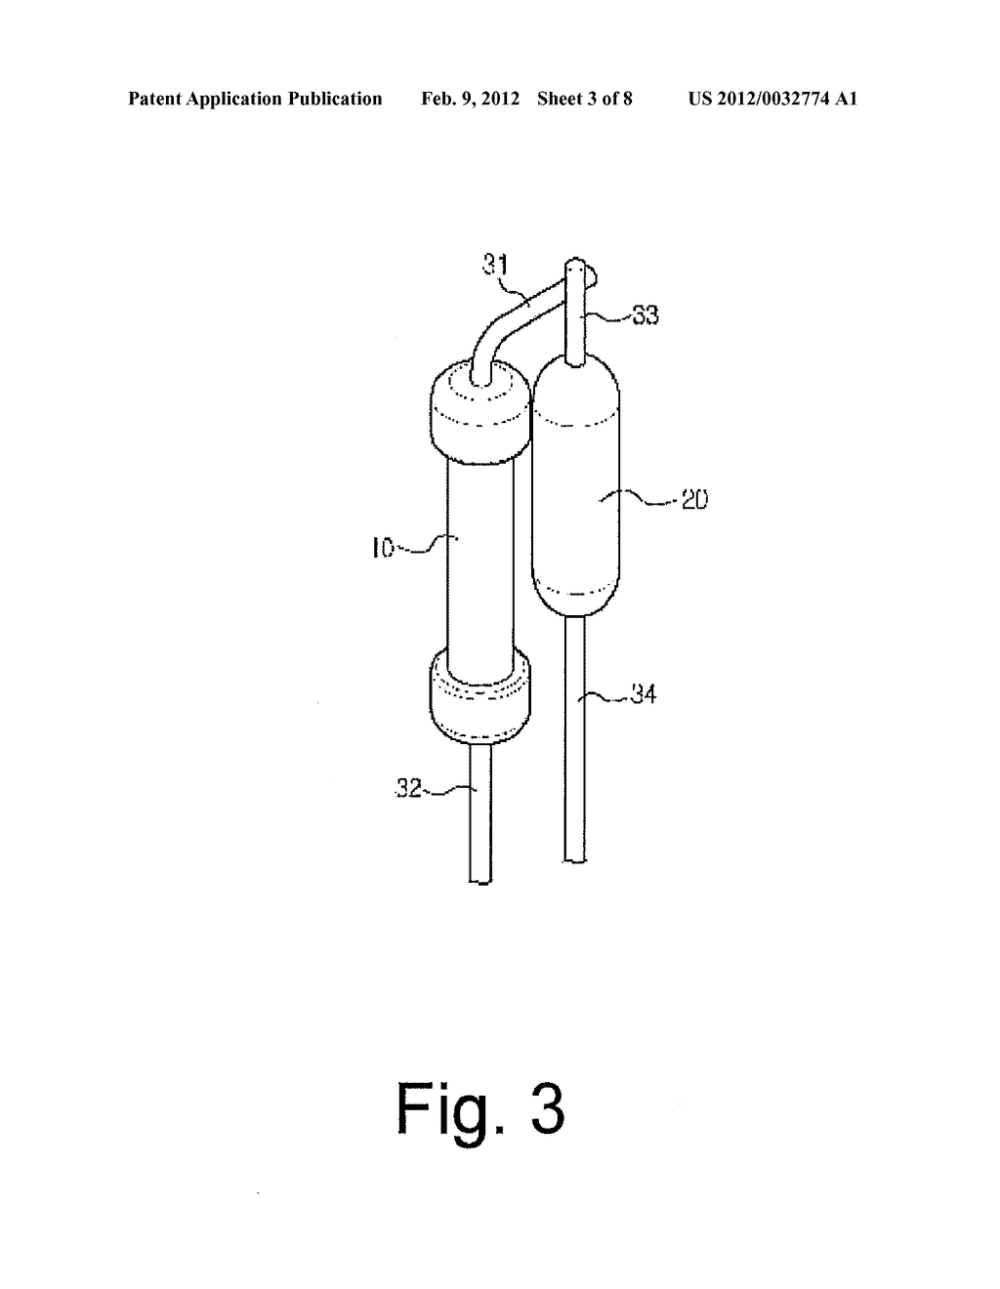 medium resolution of thermal fuse resistor manufacturing method thereof and installation method thereof diagram schematic and image 04